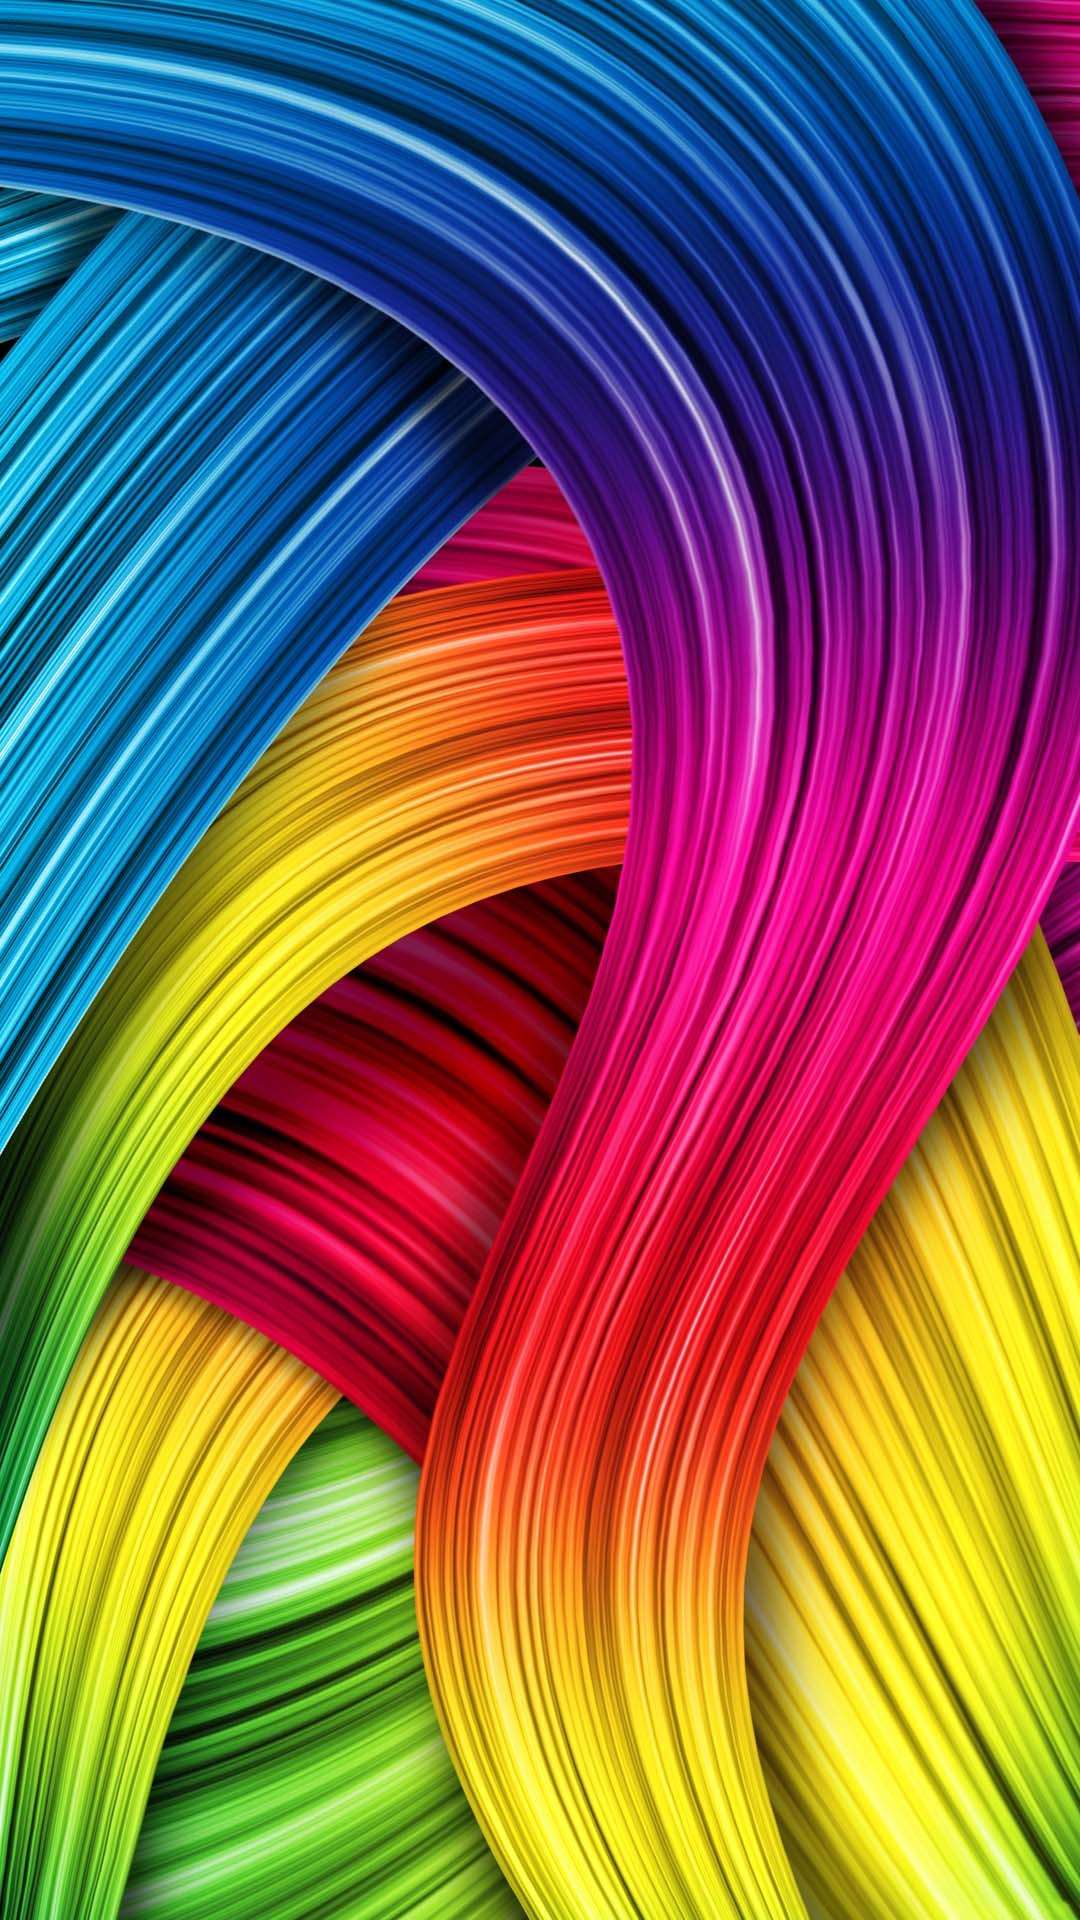 Abstract Wallpapers With Designs And Textures 3D Minimalistic Backgrounds For Galaxy S4